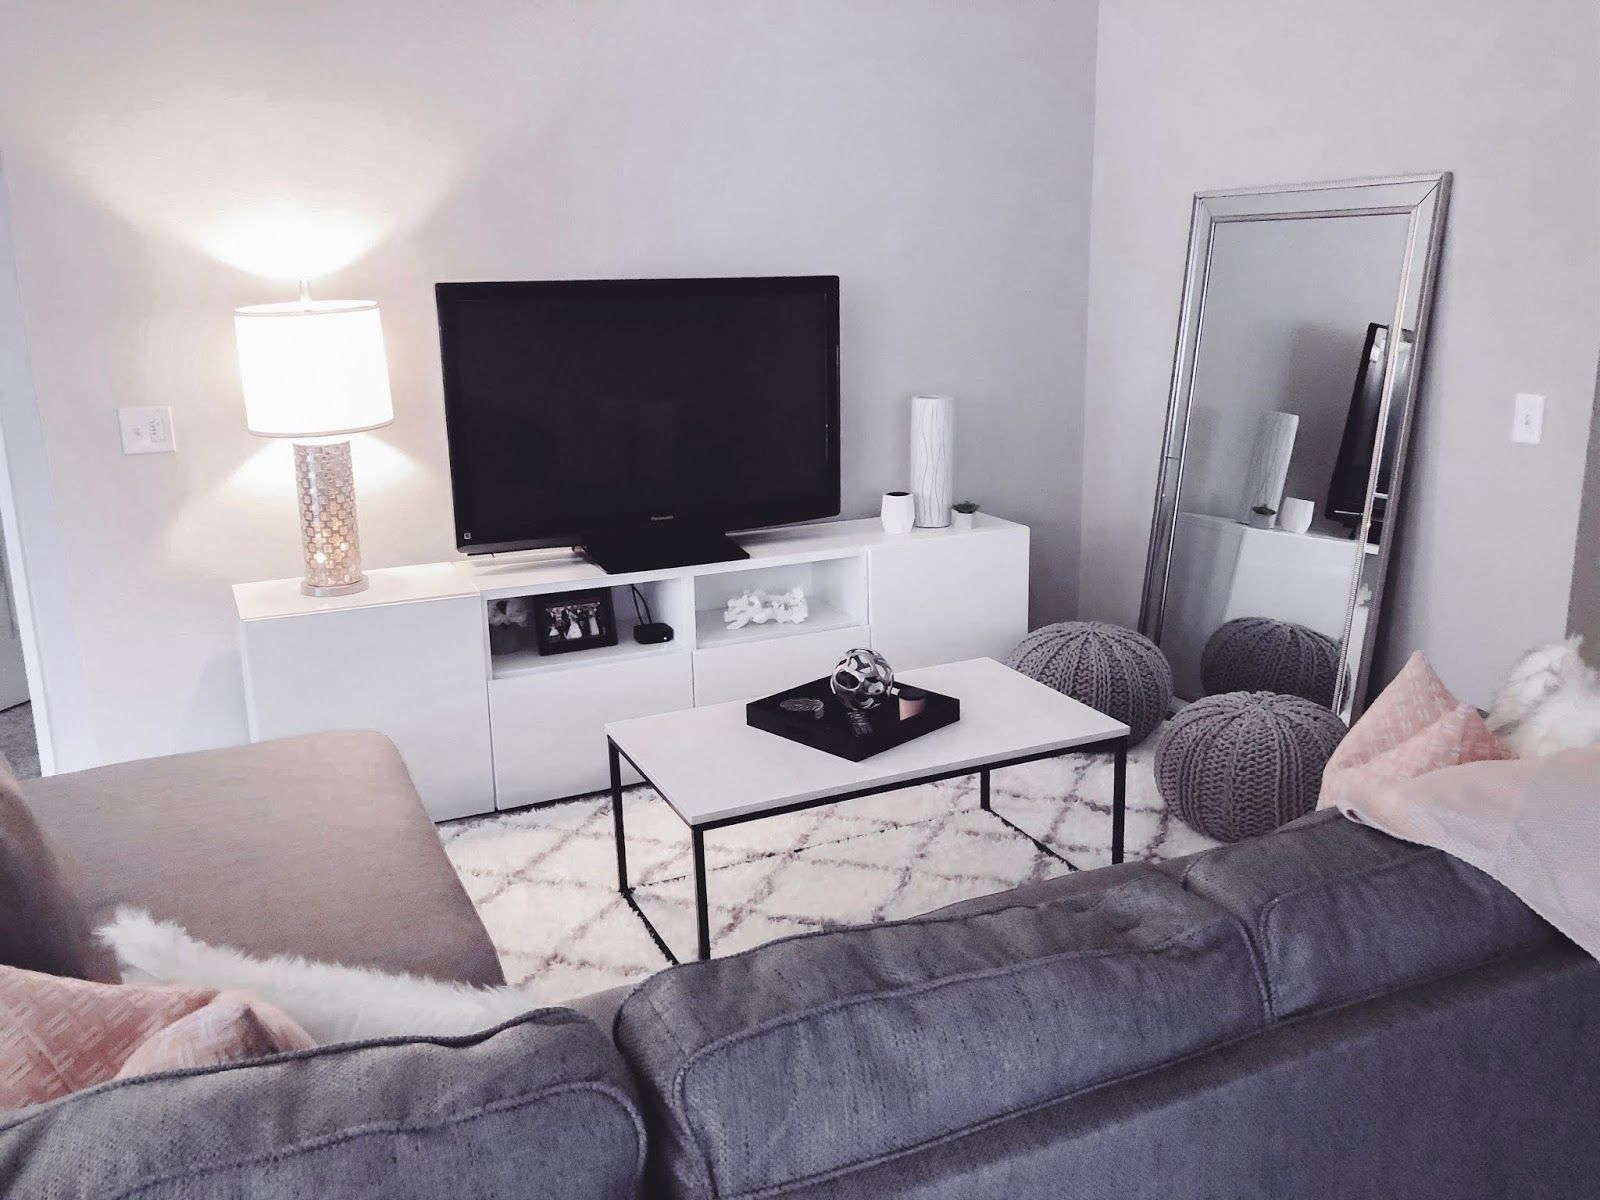 Affordable Apartment Decor Affordable Apartment Decor Living Room Tv Stand Grey Couch Living Room